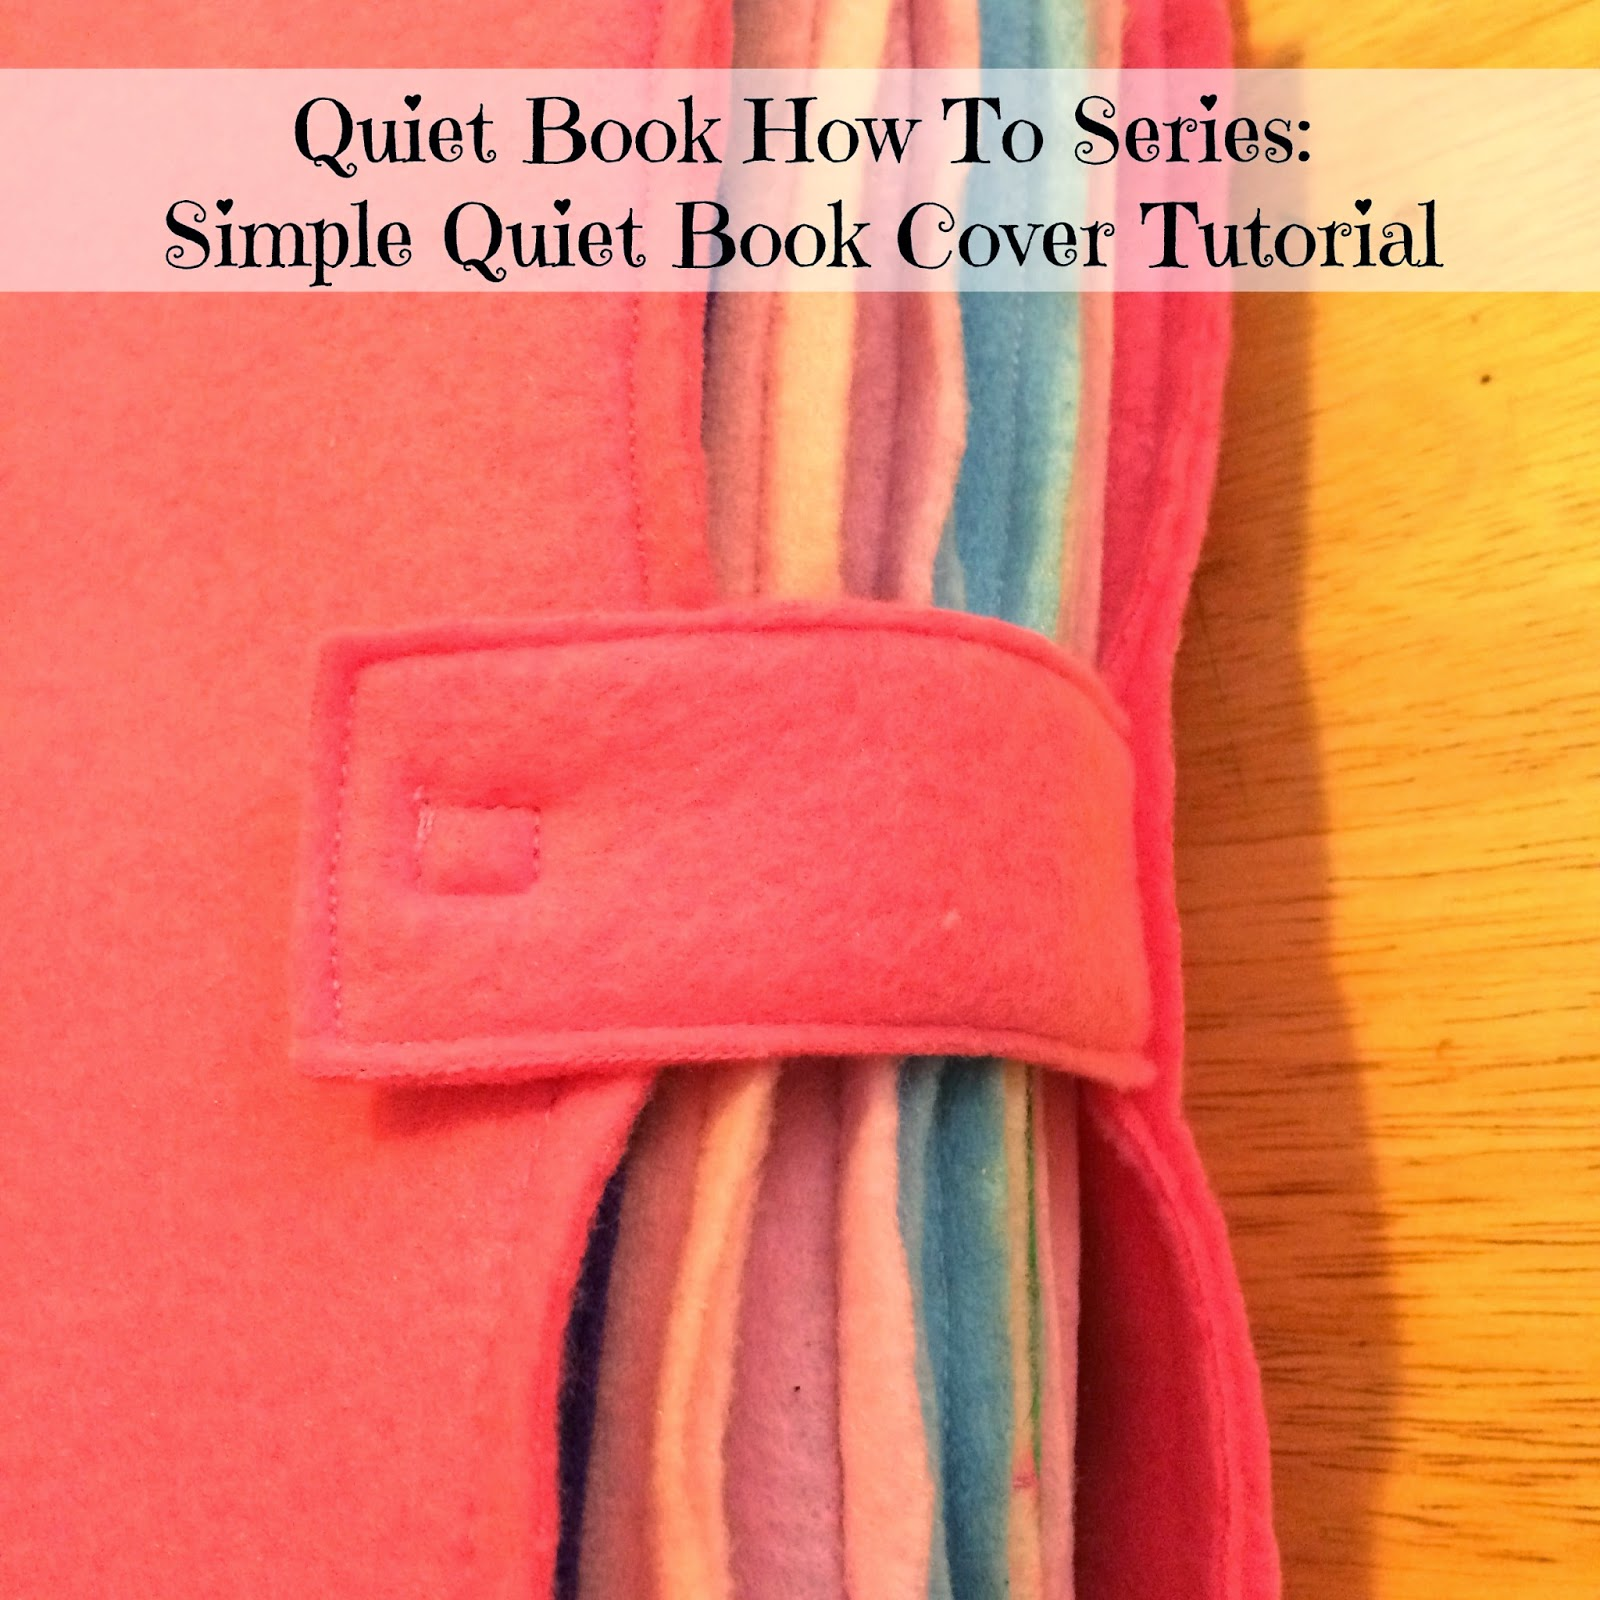 Quiet Book Cover Template : Quiet book how to series simple cover tutorial